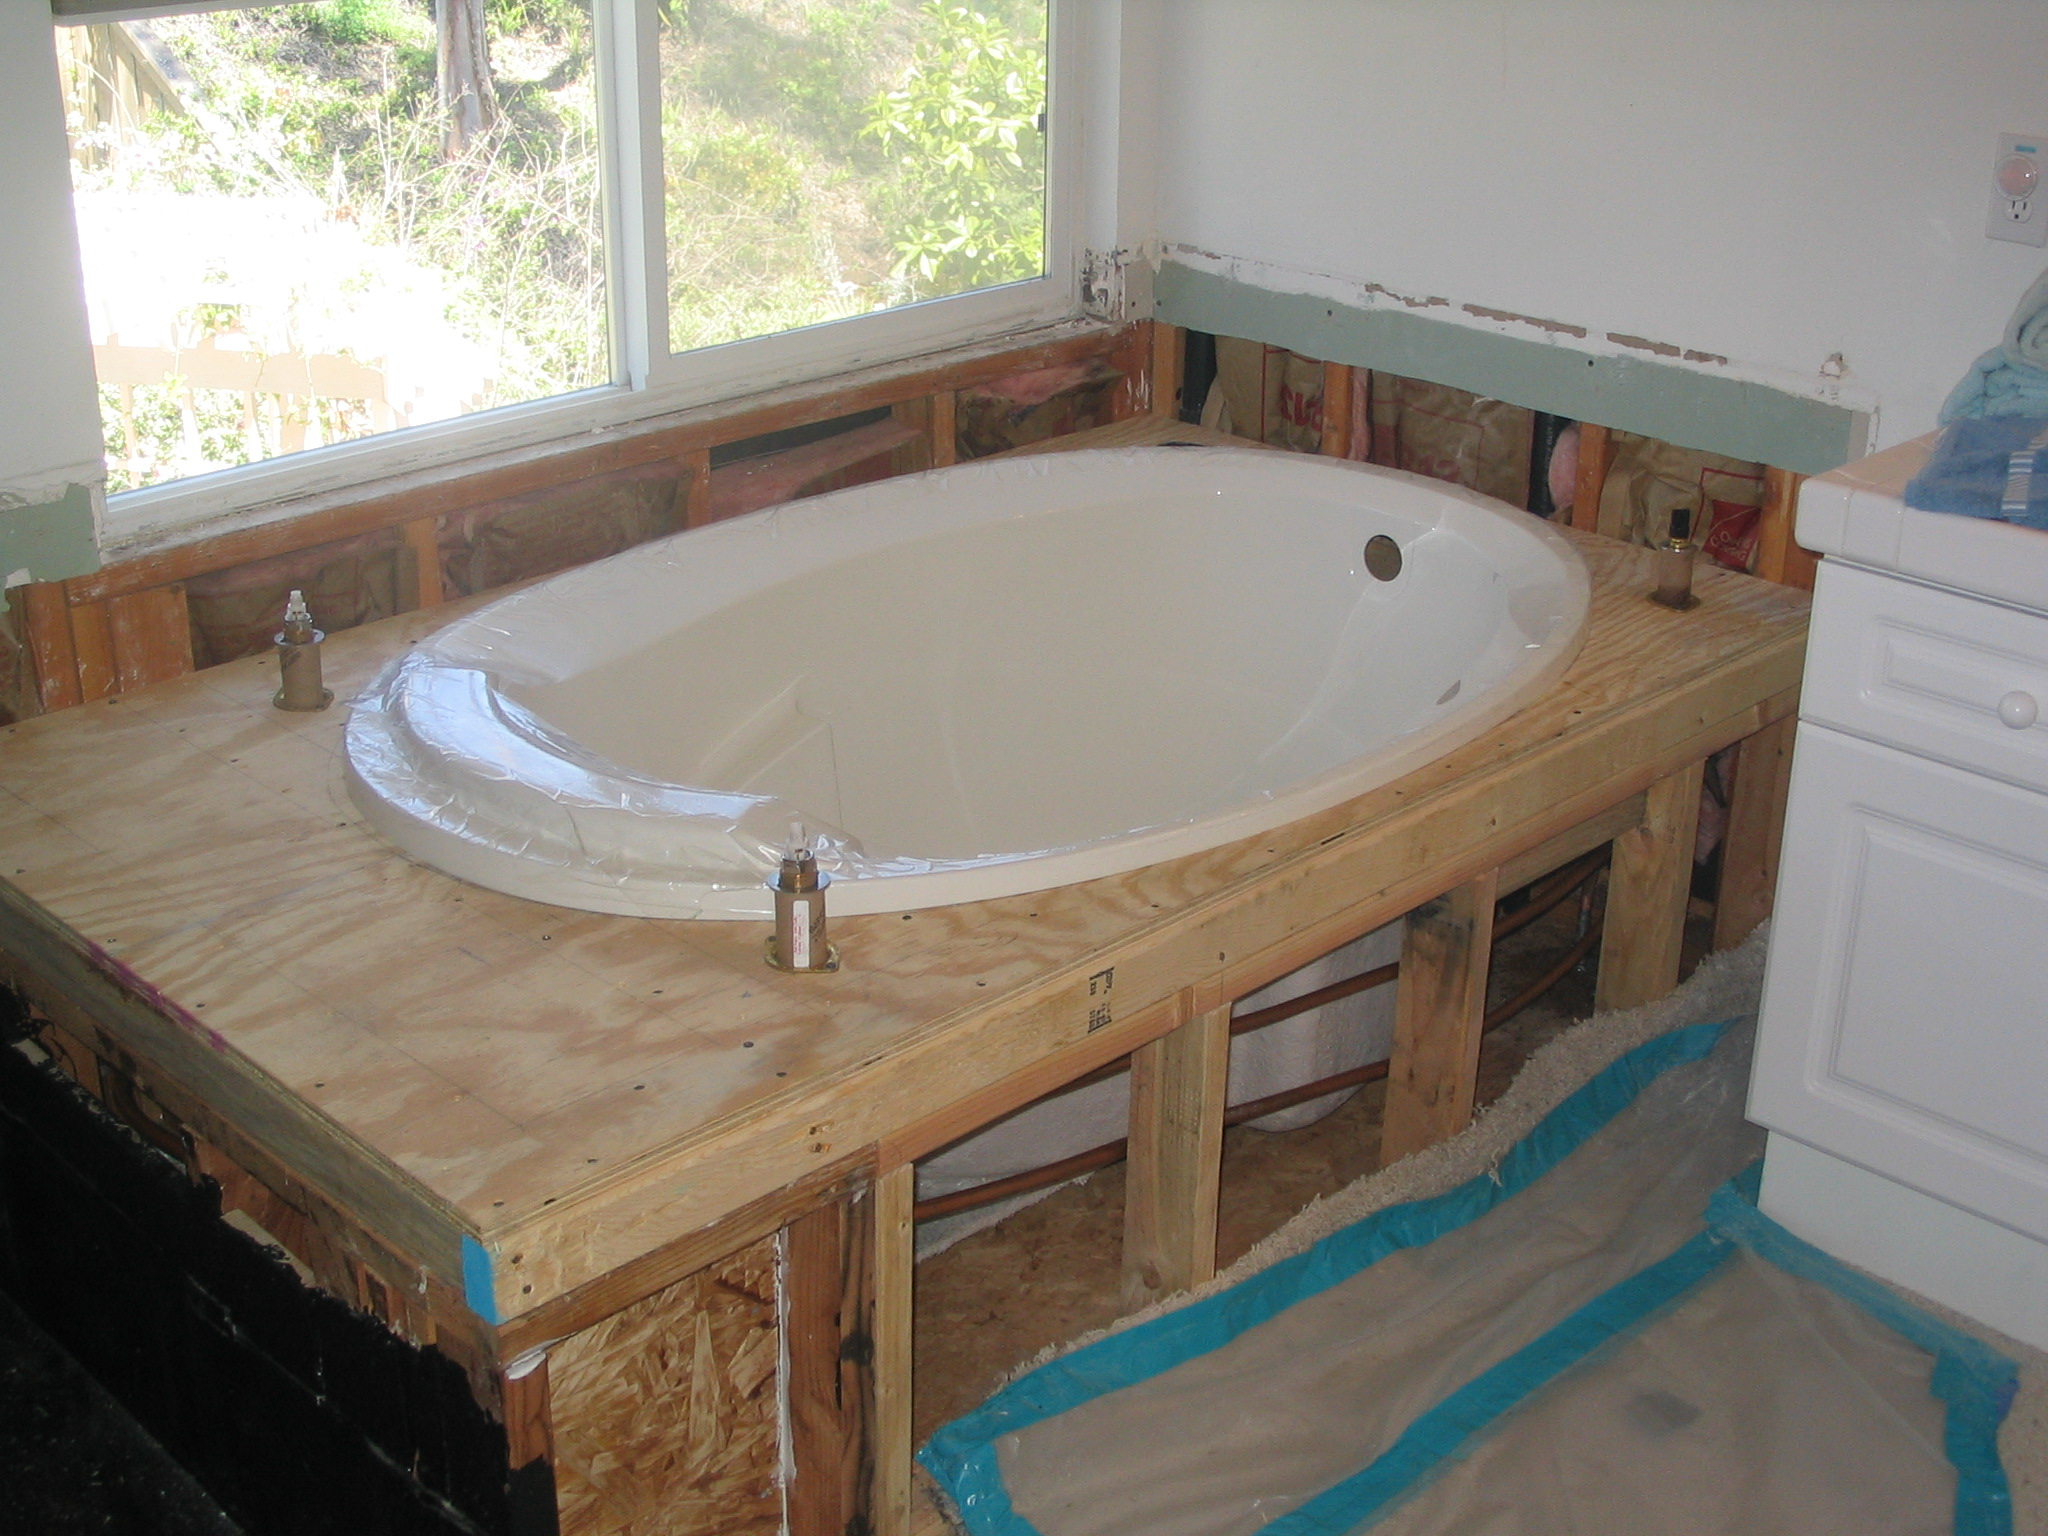 Tub shower photo gallery - Installing tile around bathtub ...